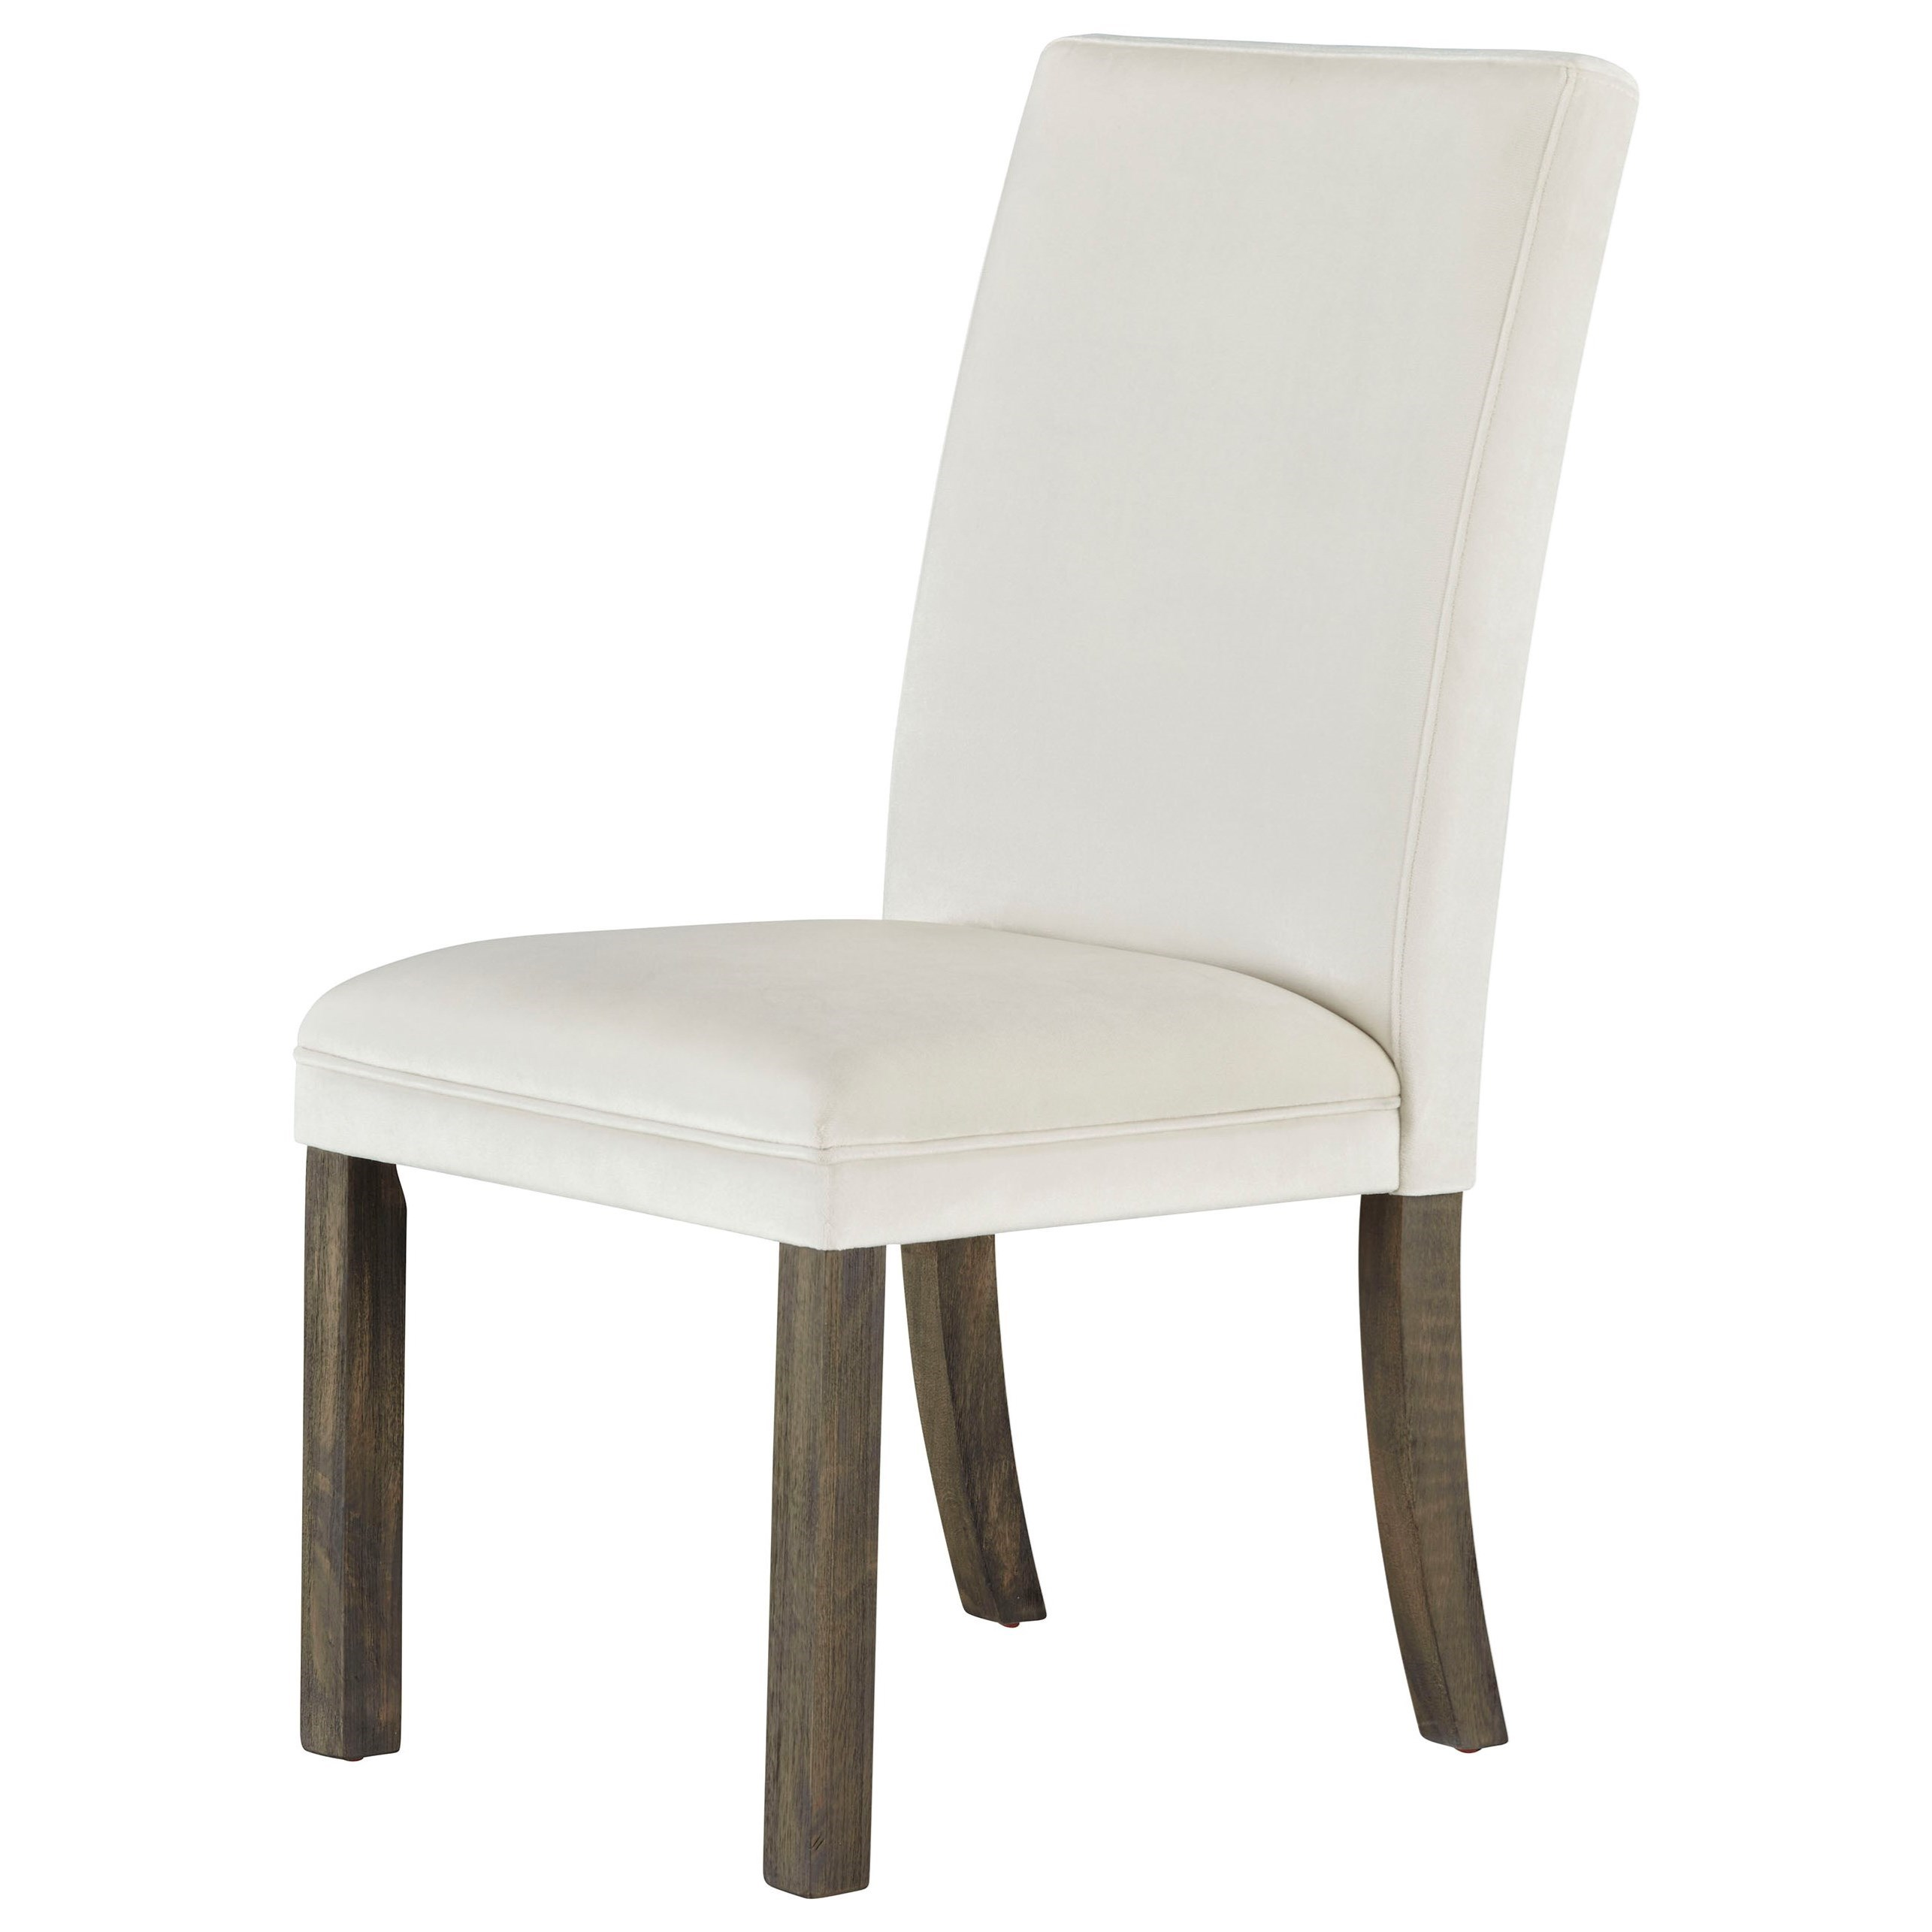 Delicieux Standard Furniture Trenton Chair,Side Uph White Fab 2/Ctn   Item Number